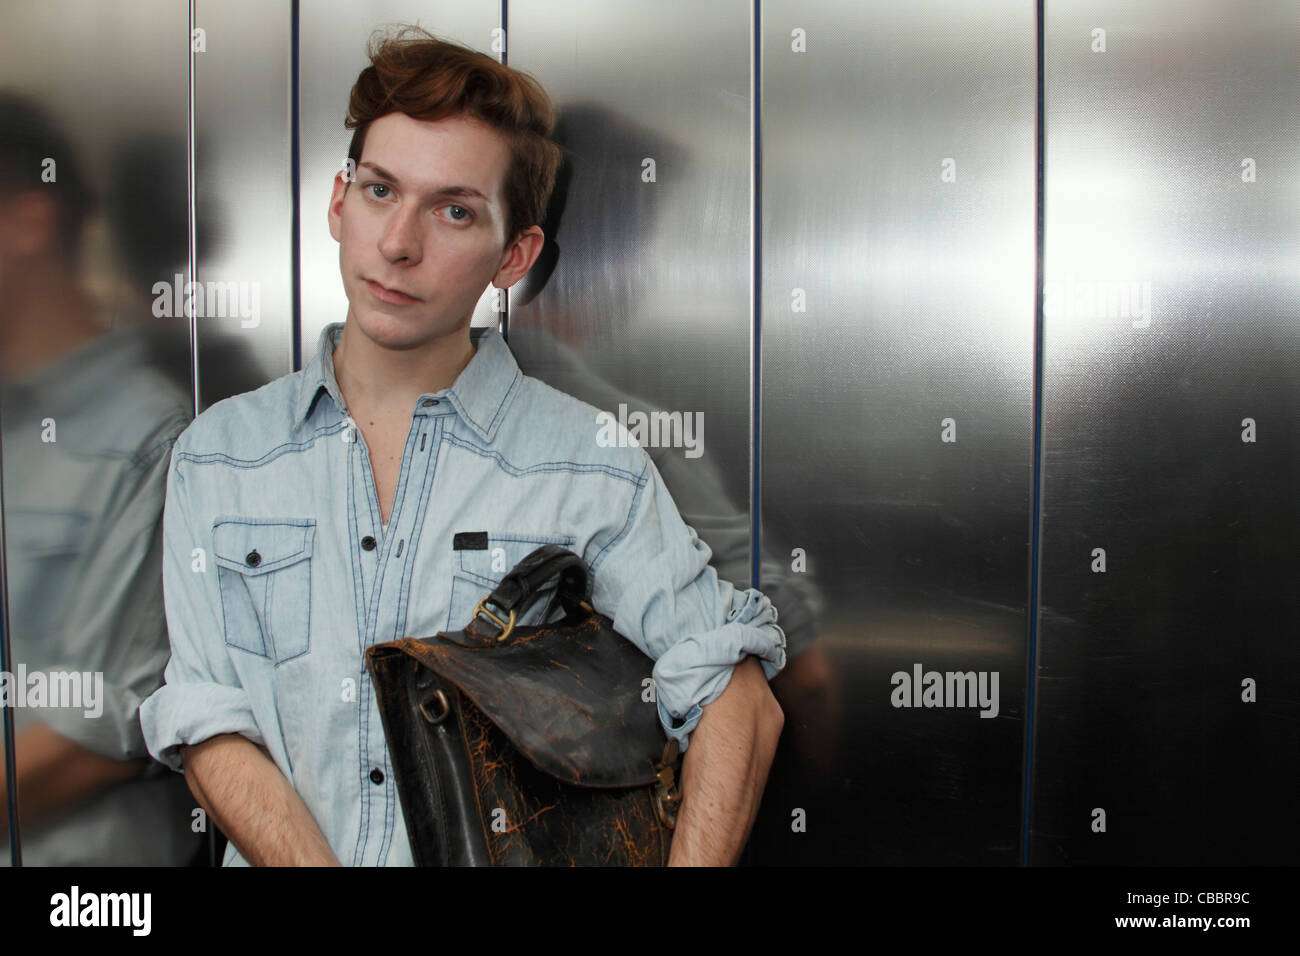 Man holding briefcase in elevator - Stock Image